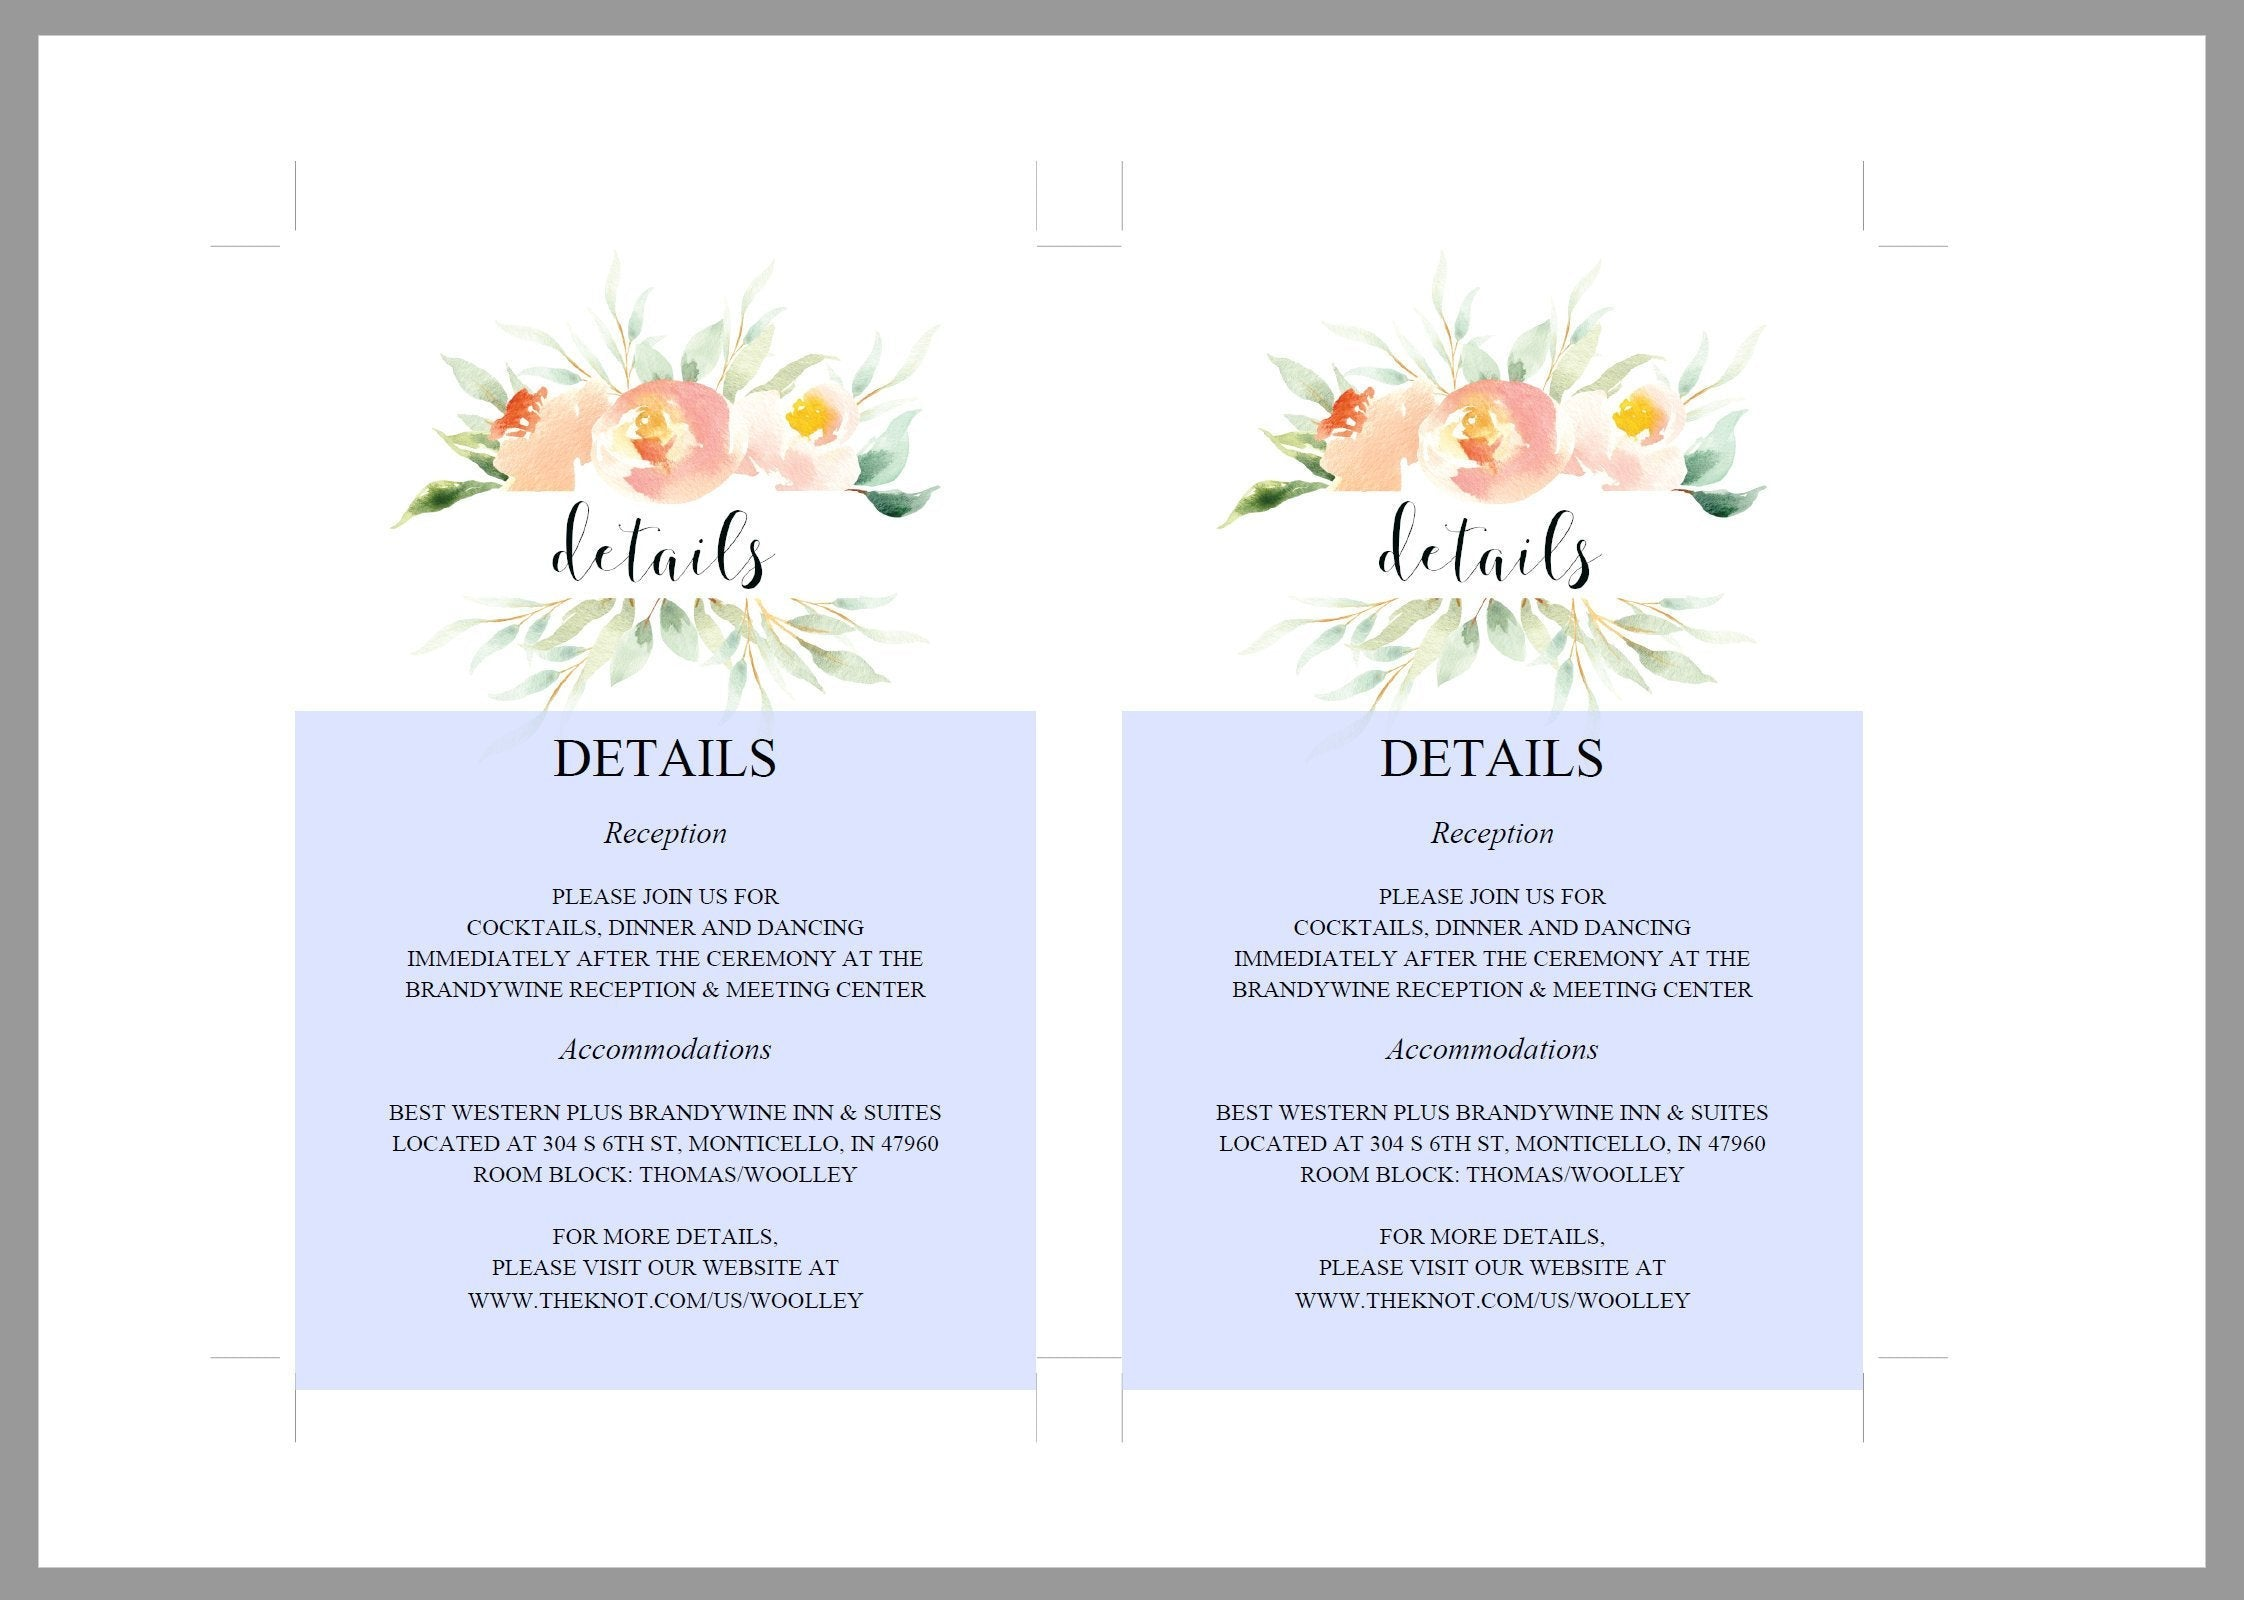 Wedding Details Card Template, Instant Download, Information Card, Wedding Info Card, Rustic Wedding,Details Template, Blush  - Sarah